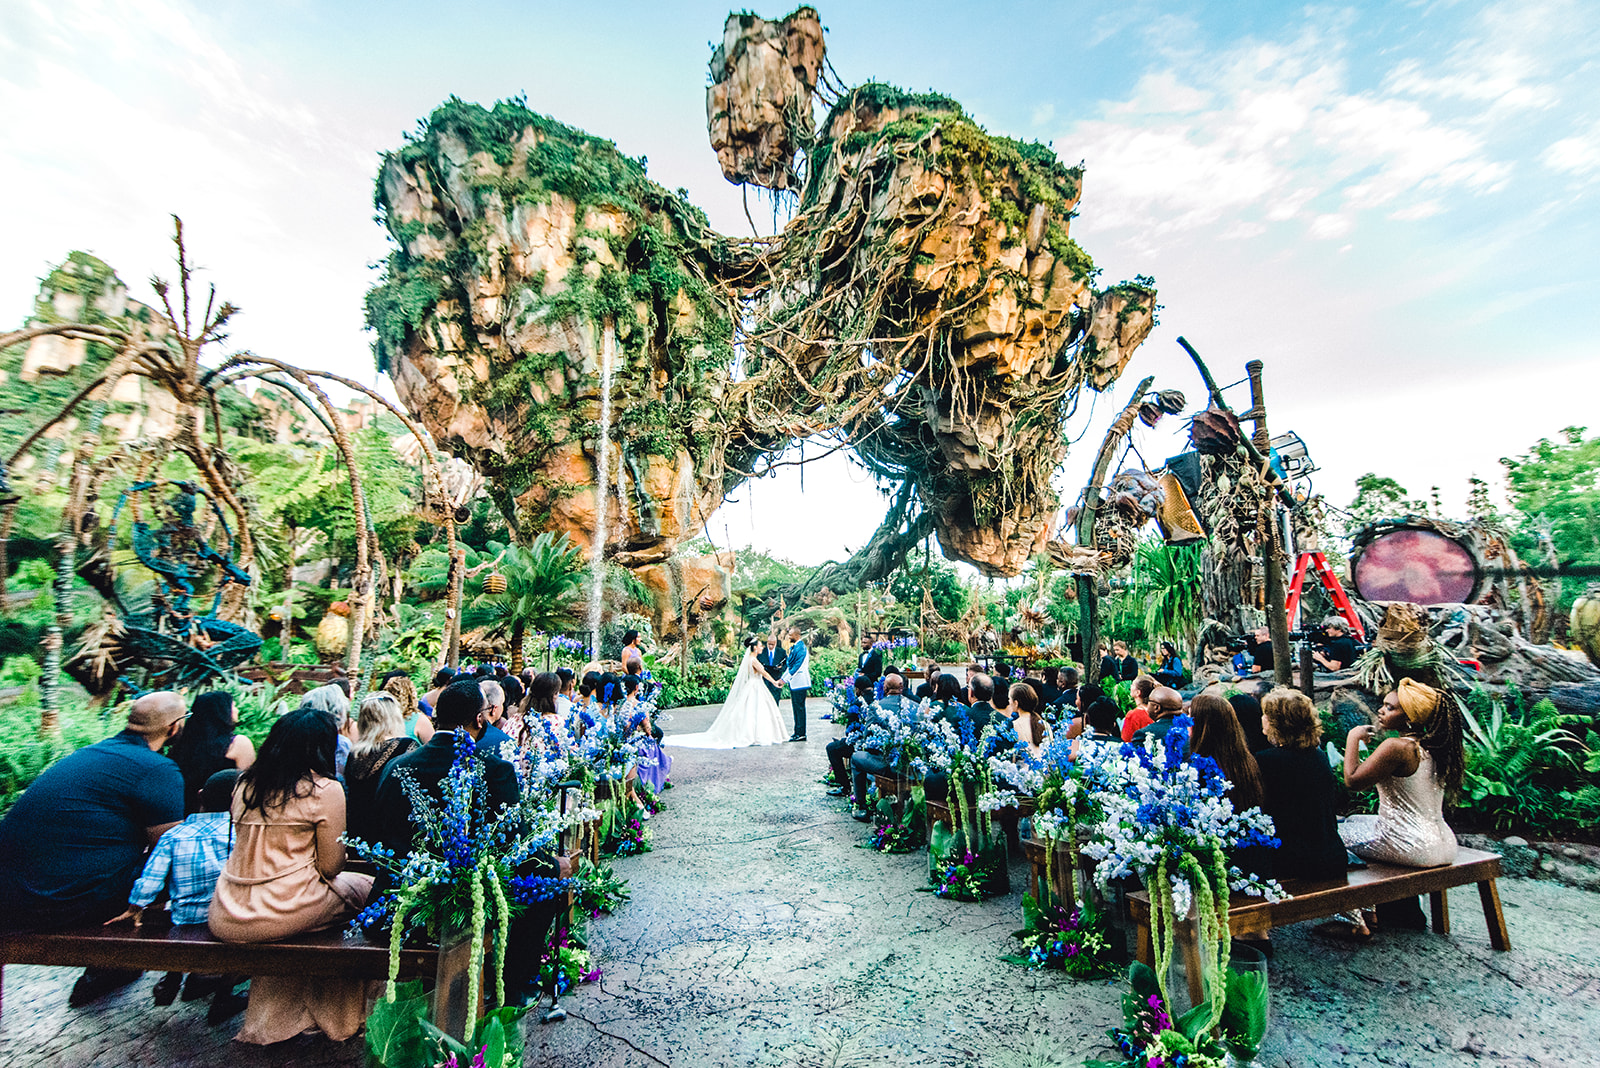 First Ever Fairytale Wedding in Disney's Pandora the World of Avatar